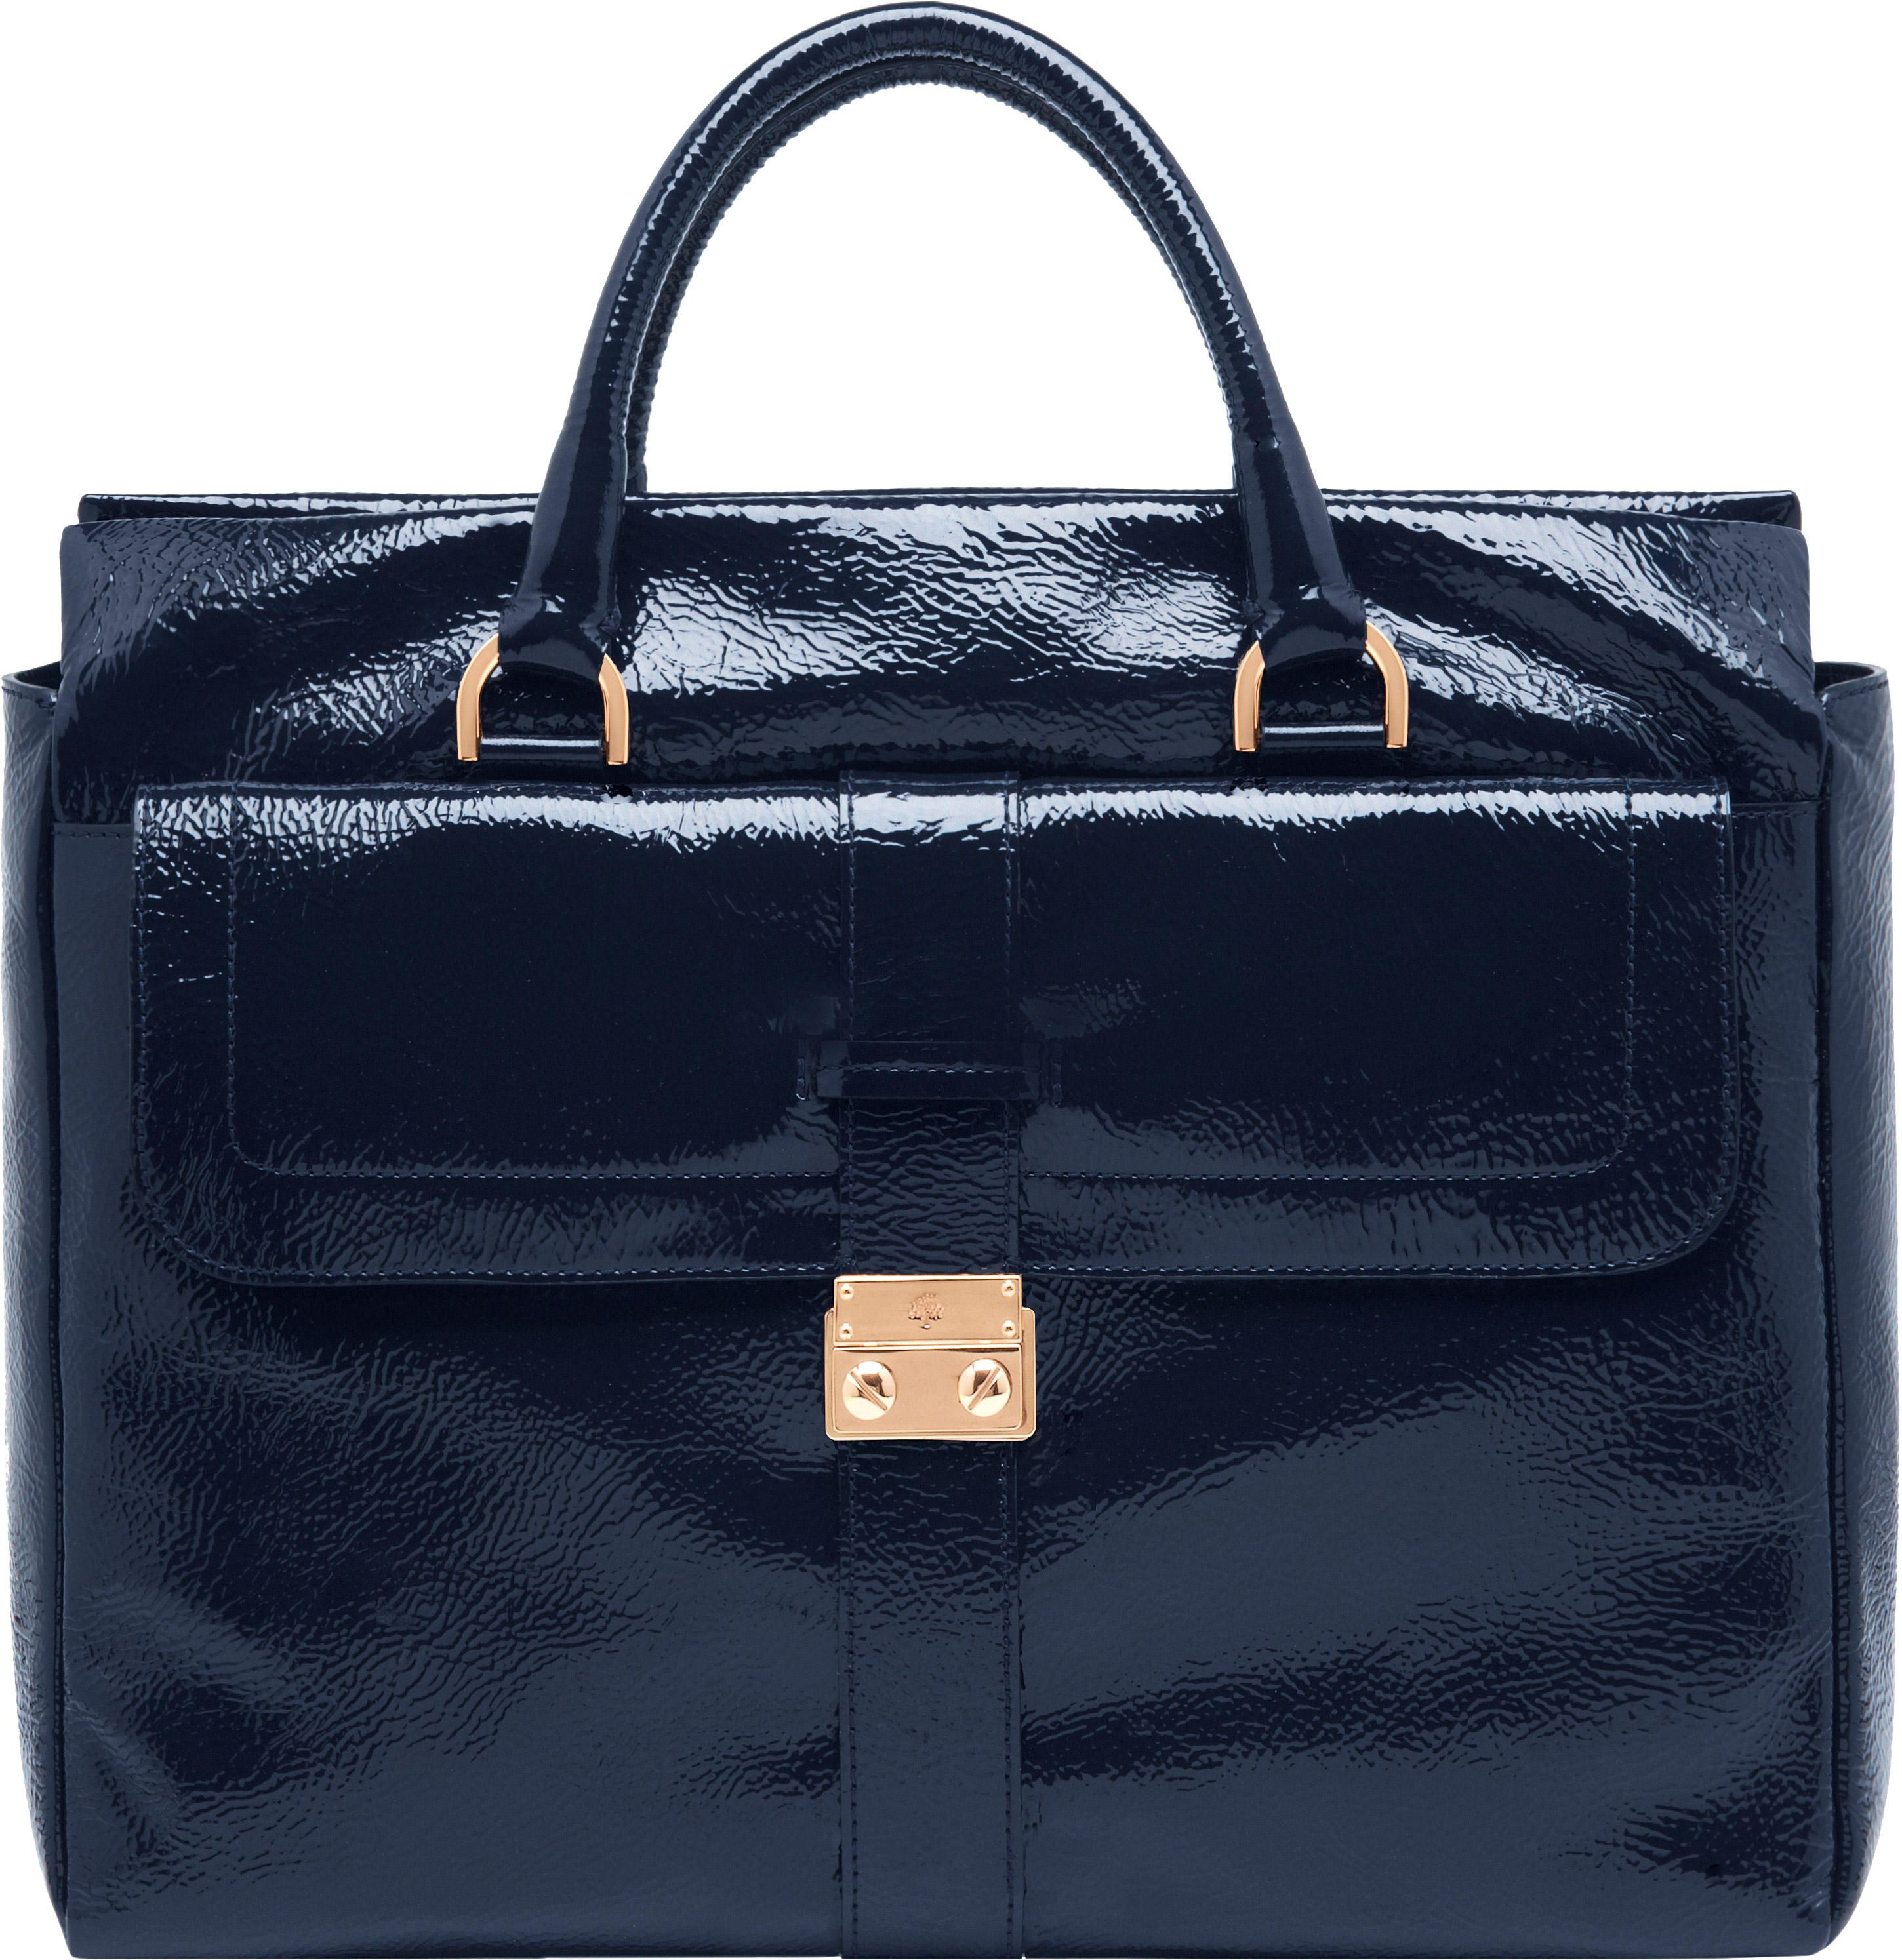 5a5b88ea3d98 123456789 39cb8 6875c  best price mulberry harriet tote nightshade blue  spongy patent 7be2a 5c177